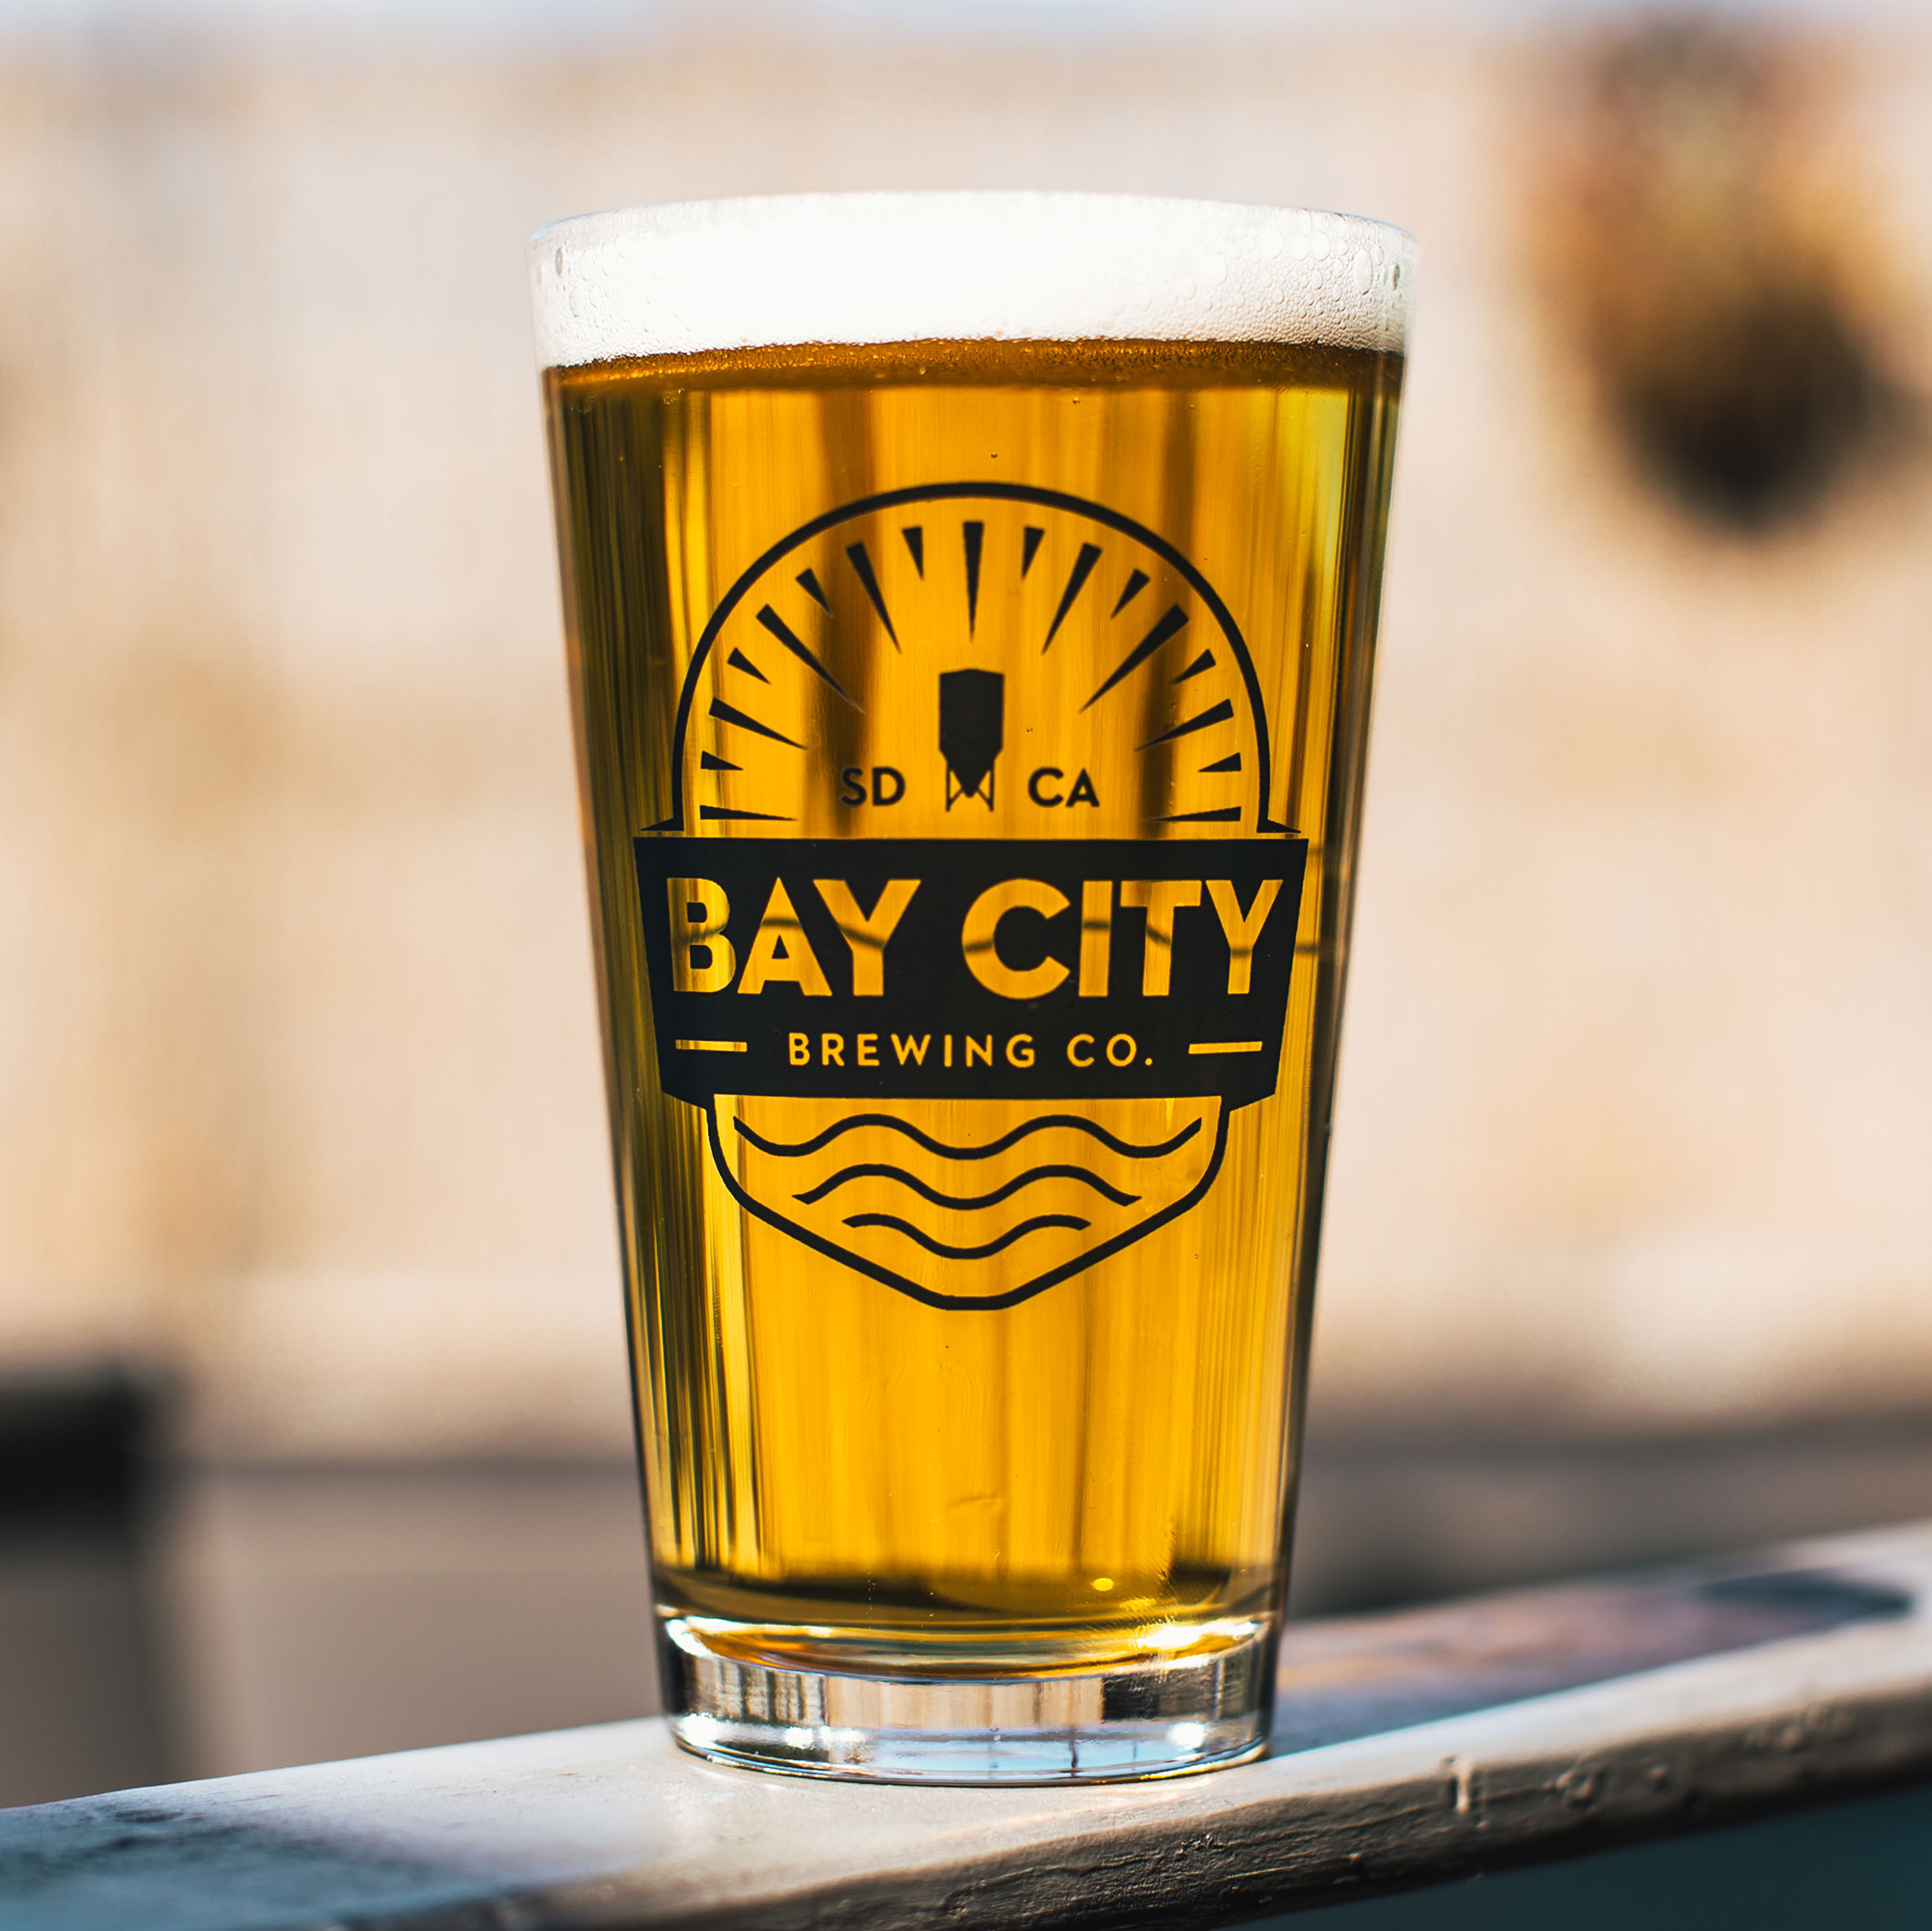 https://baycitybrewingco.com/wp-content/uploads/2019/03/bay_city_fiesta_island_glass_2x.jpg